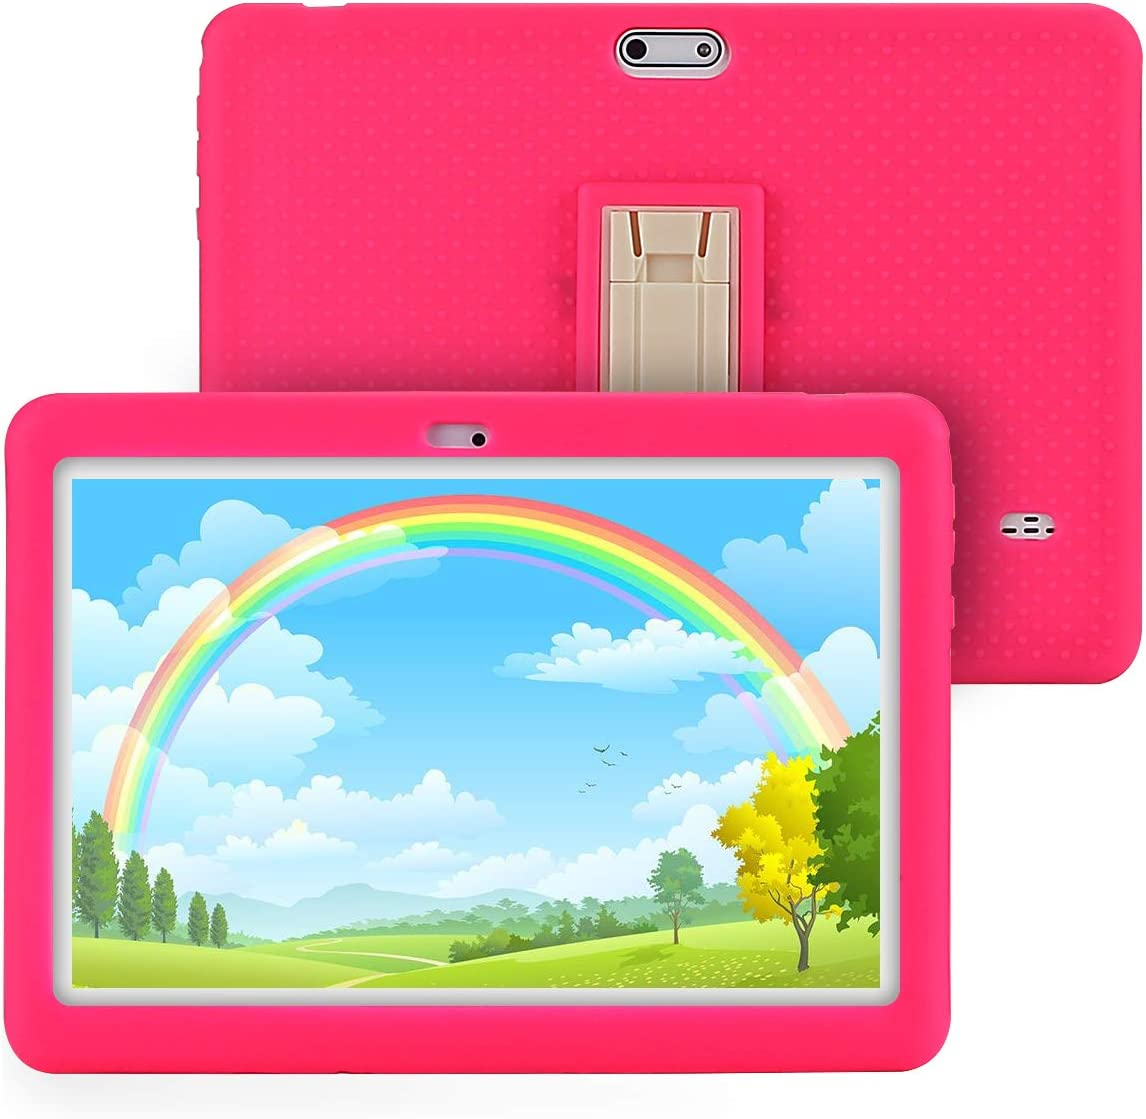 Tablet for Kids Tulsa Mall Tagital T10K 10.1 Display 70% OFF Outlet inch with